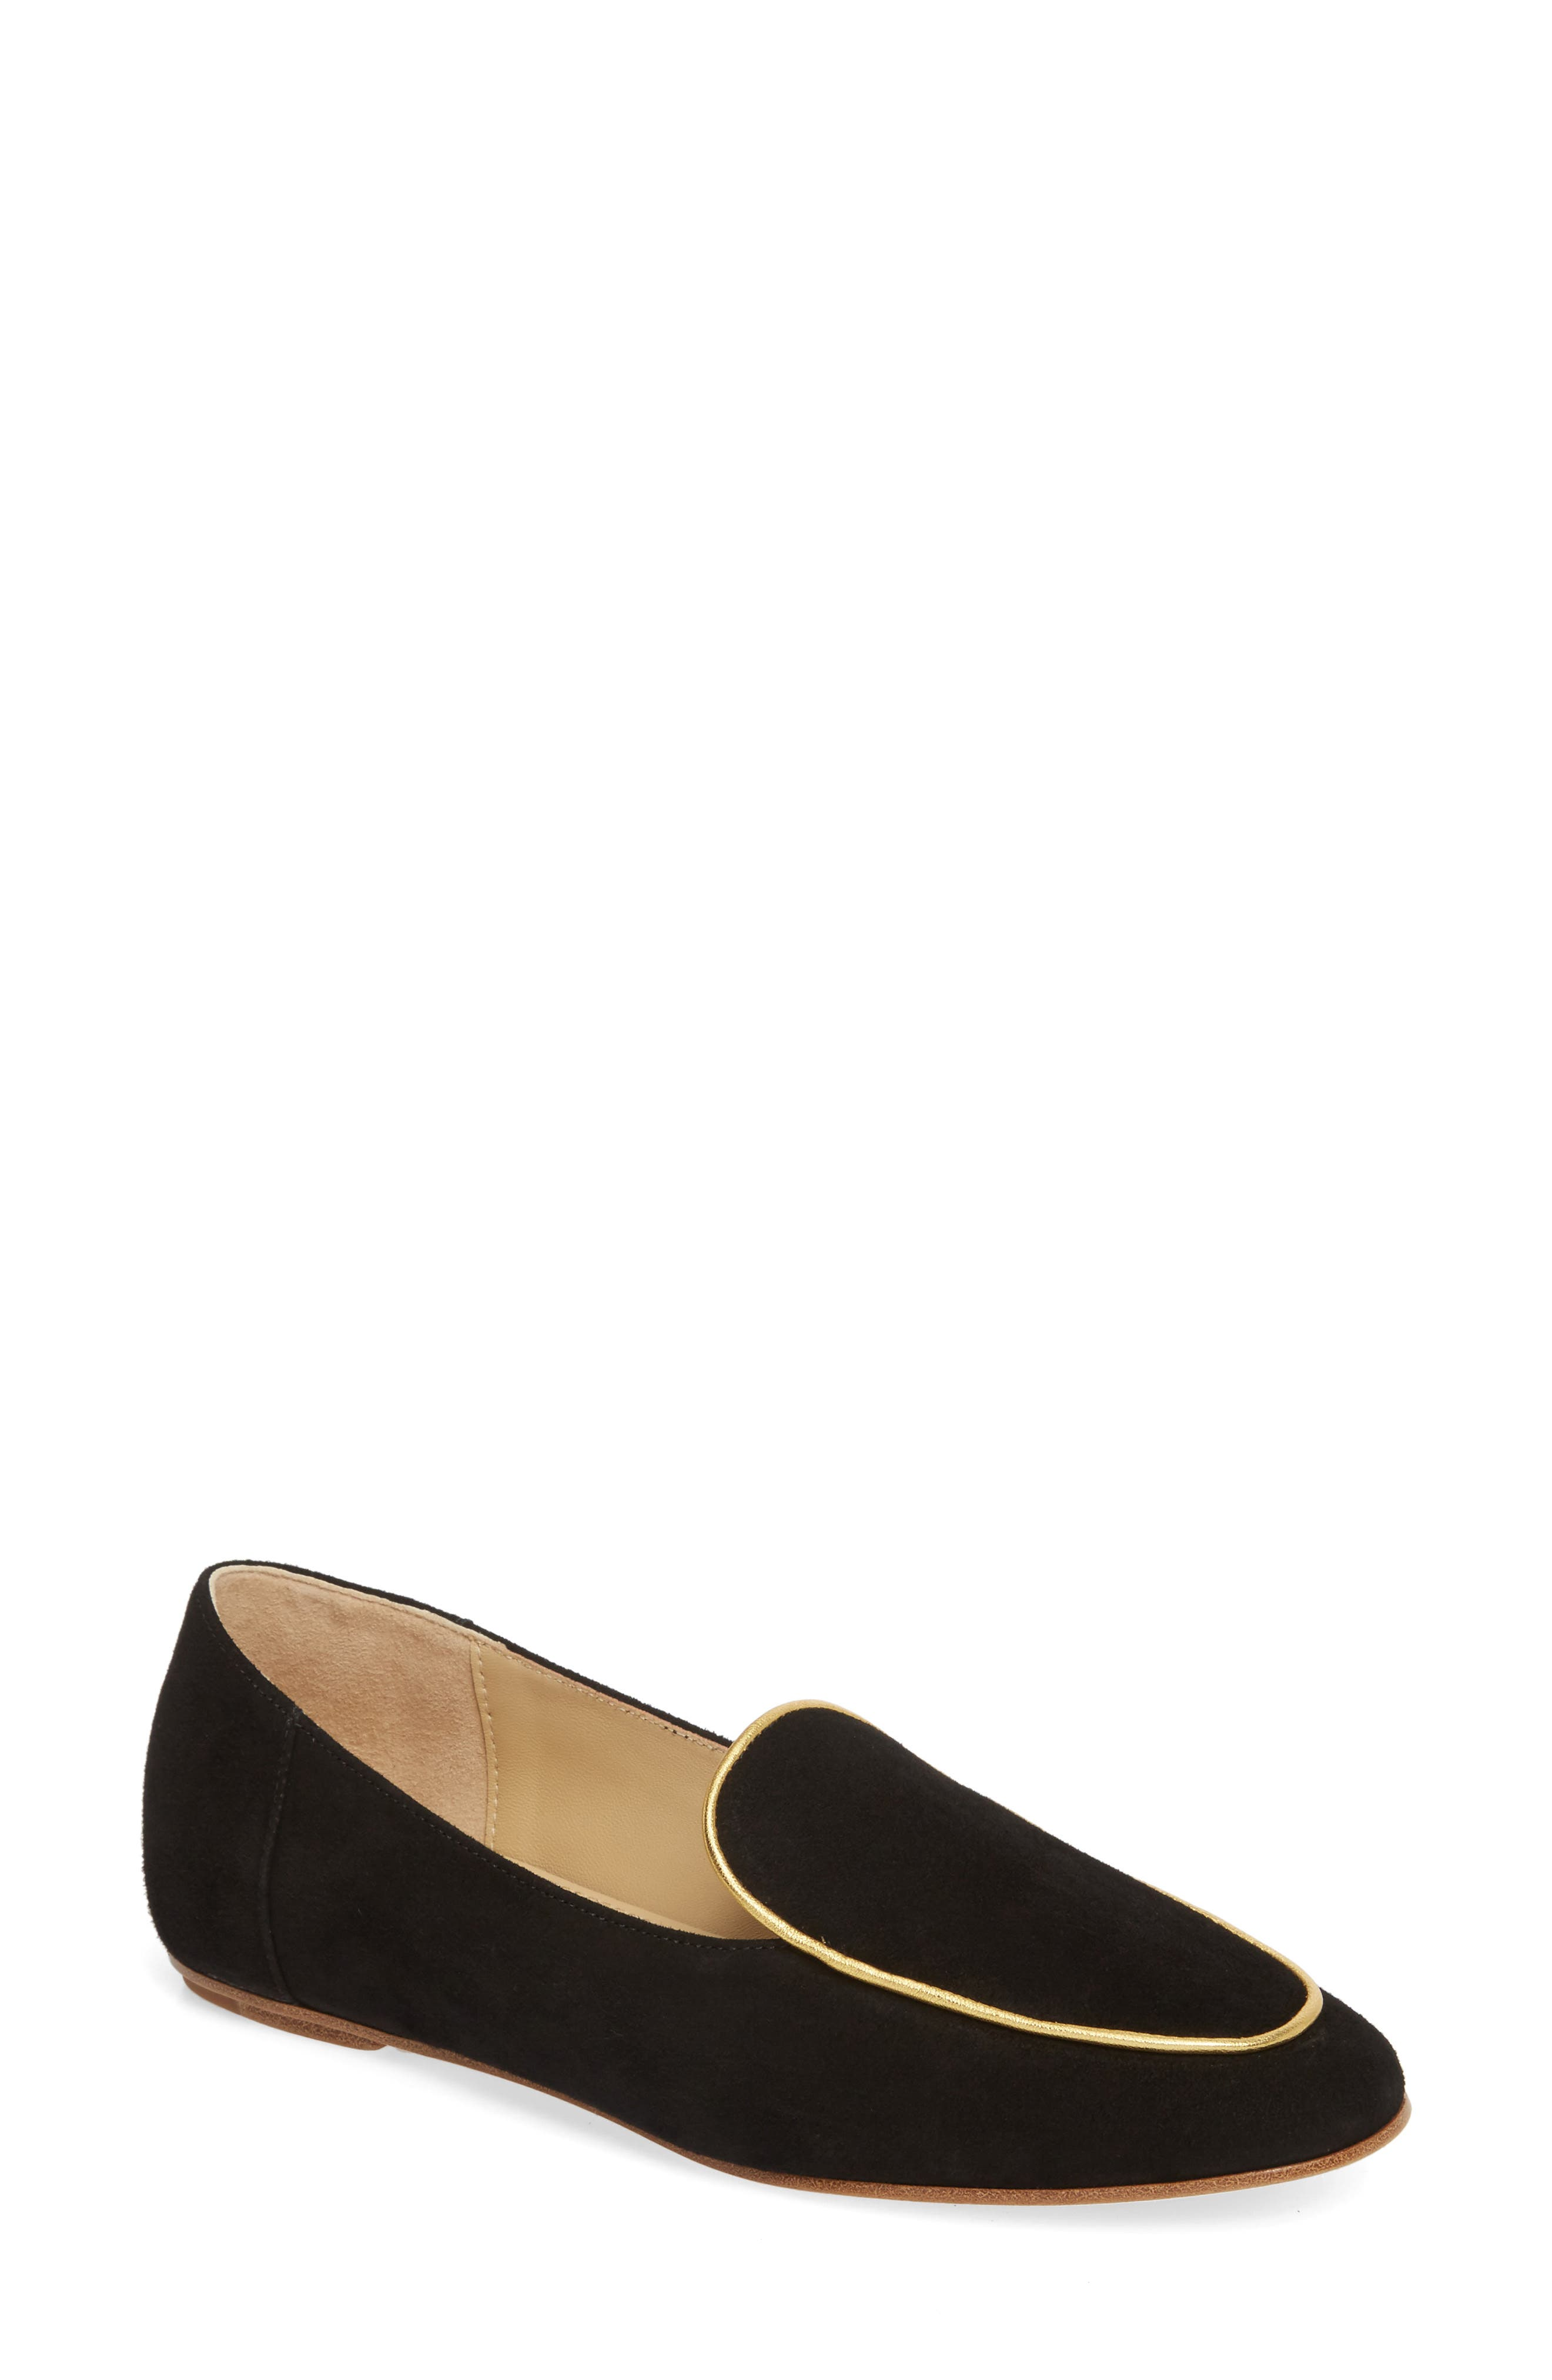 Camille Loafer,                             Main thumbnail 1, color,                             BLACK/ GOLD SUEDE